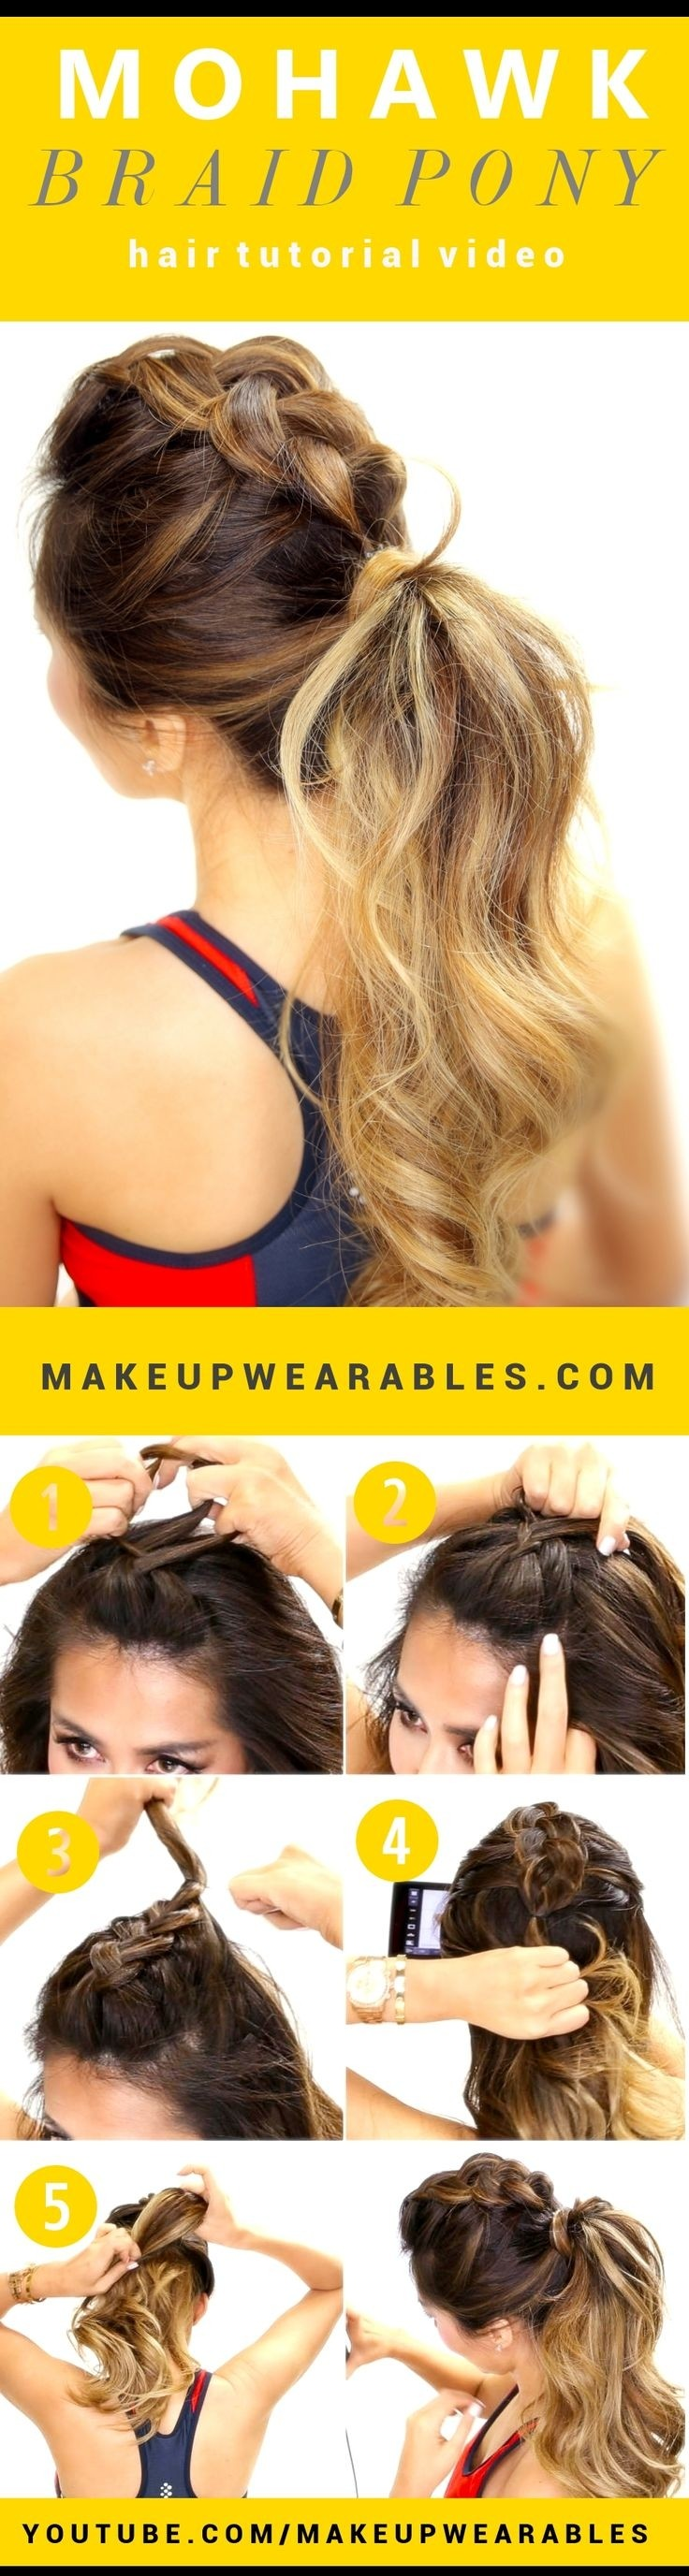 Mohawk Braid Ponytail Hairstyle Tutorial